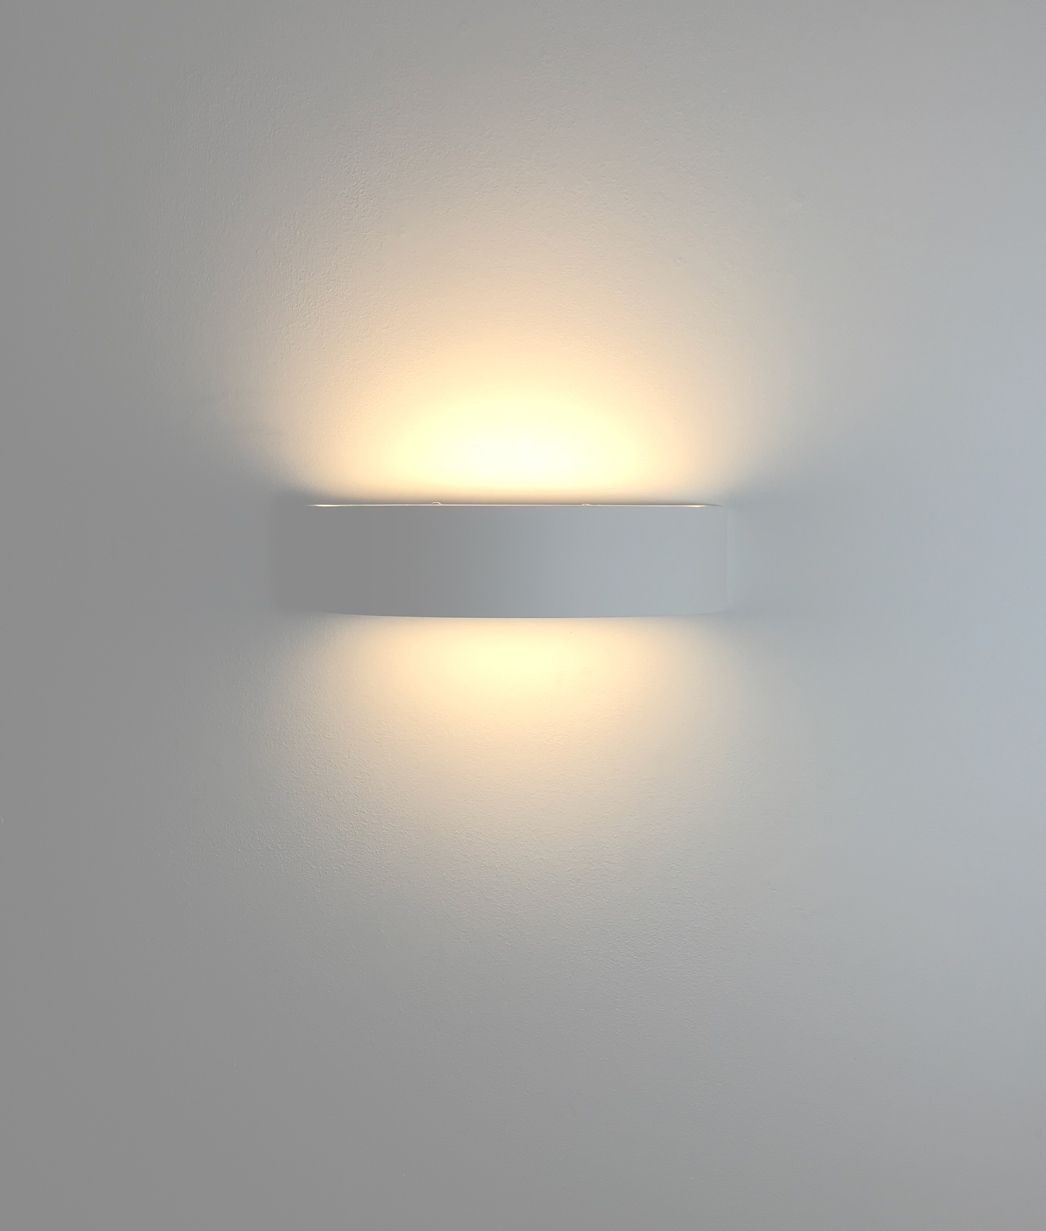 Led Plaster Wall Washing Semicircular Wall Light With Diffusers Arquitetura Design Urbanismo